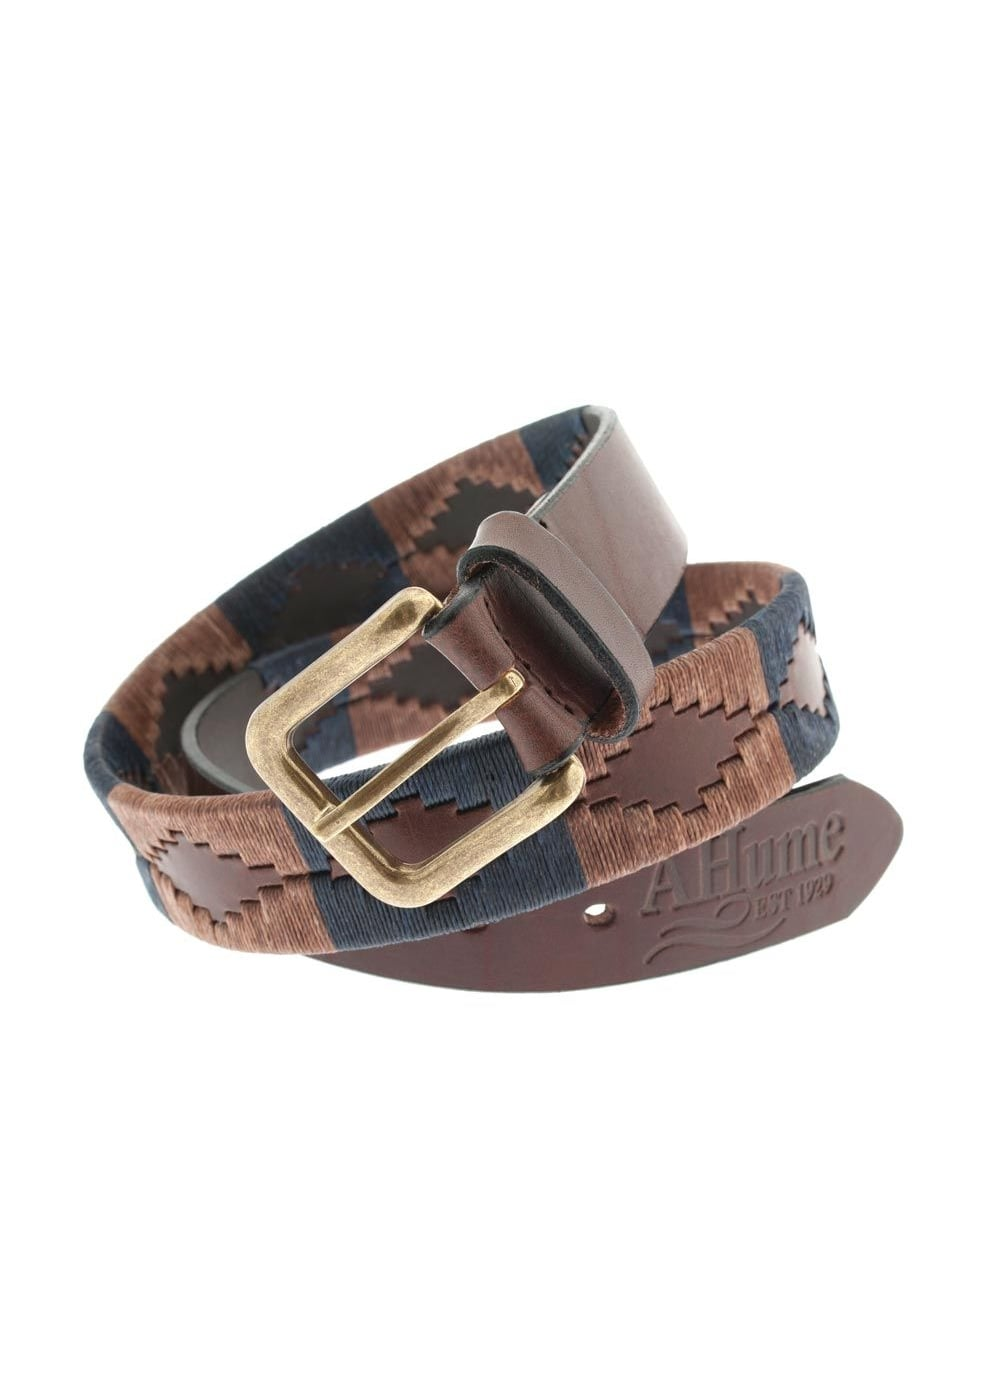 A Hume Seb 1.5 Polo Belt  Large Image